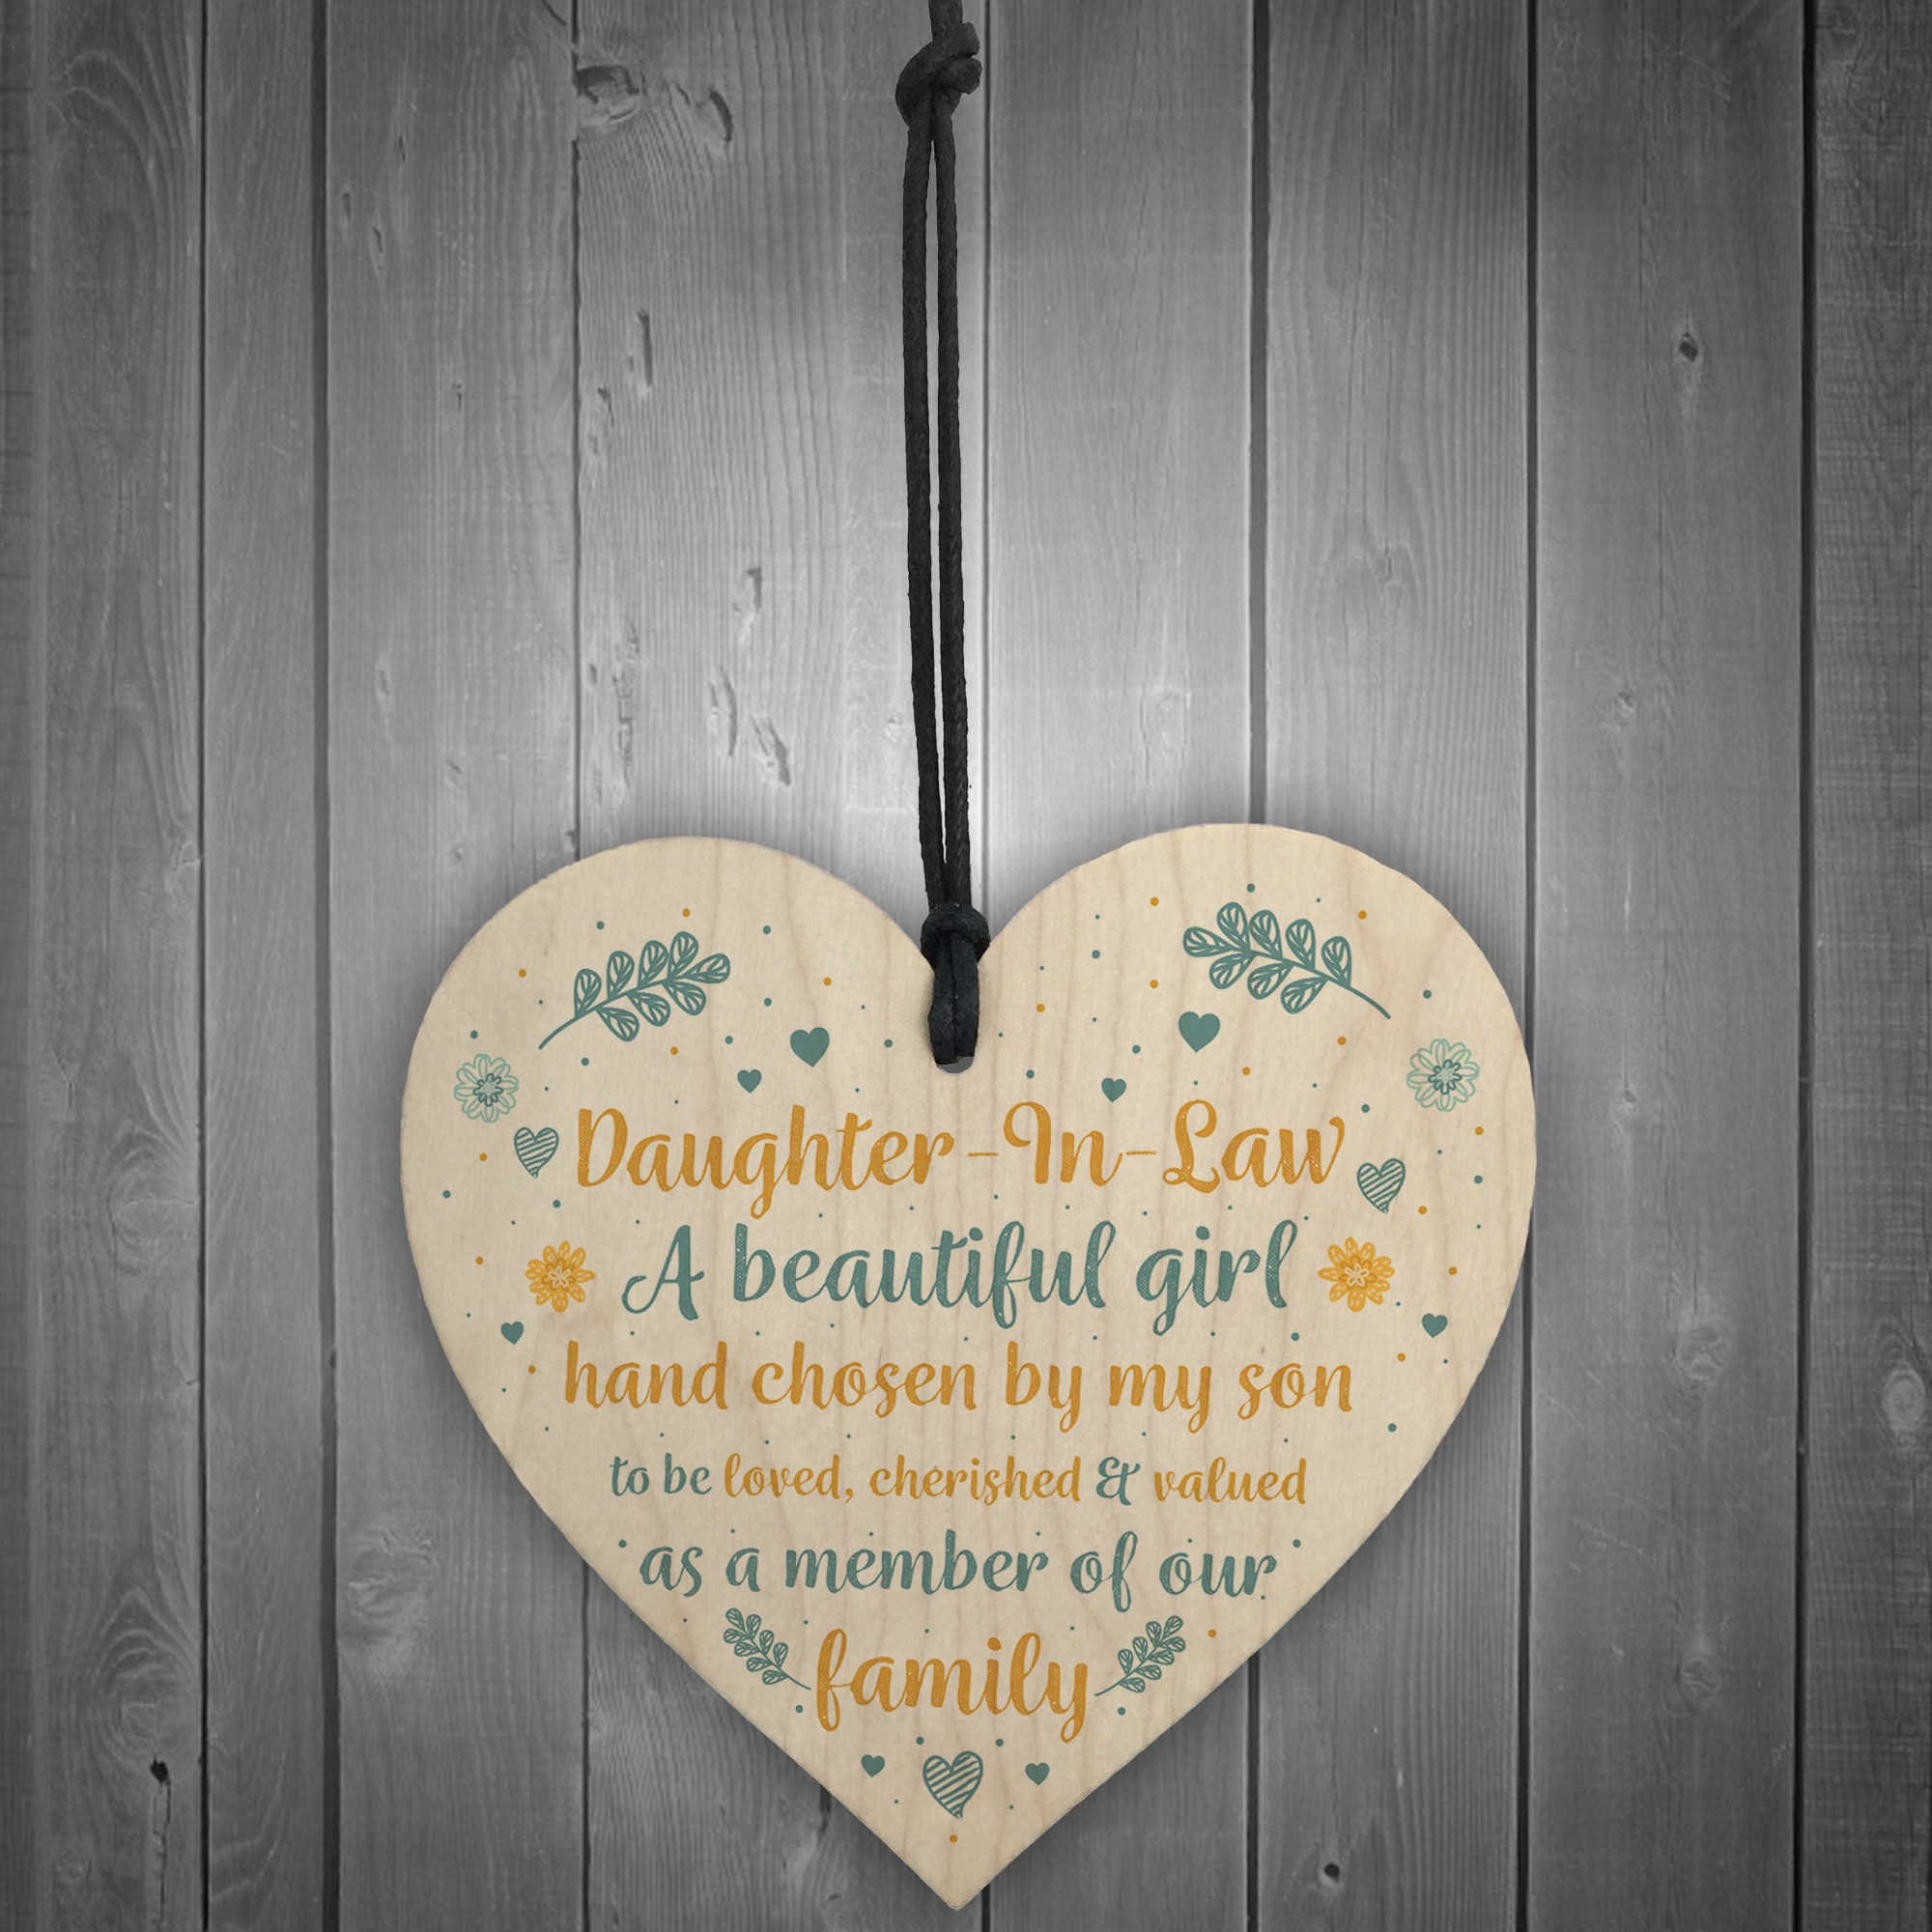 Details About Daughter In Law Gift Handmade Wooden Heart Plaque Birthday Friendship Sign